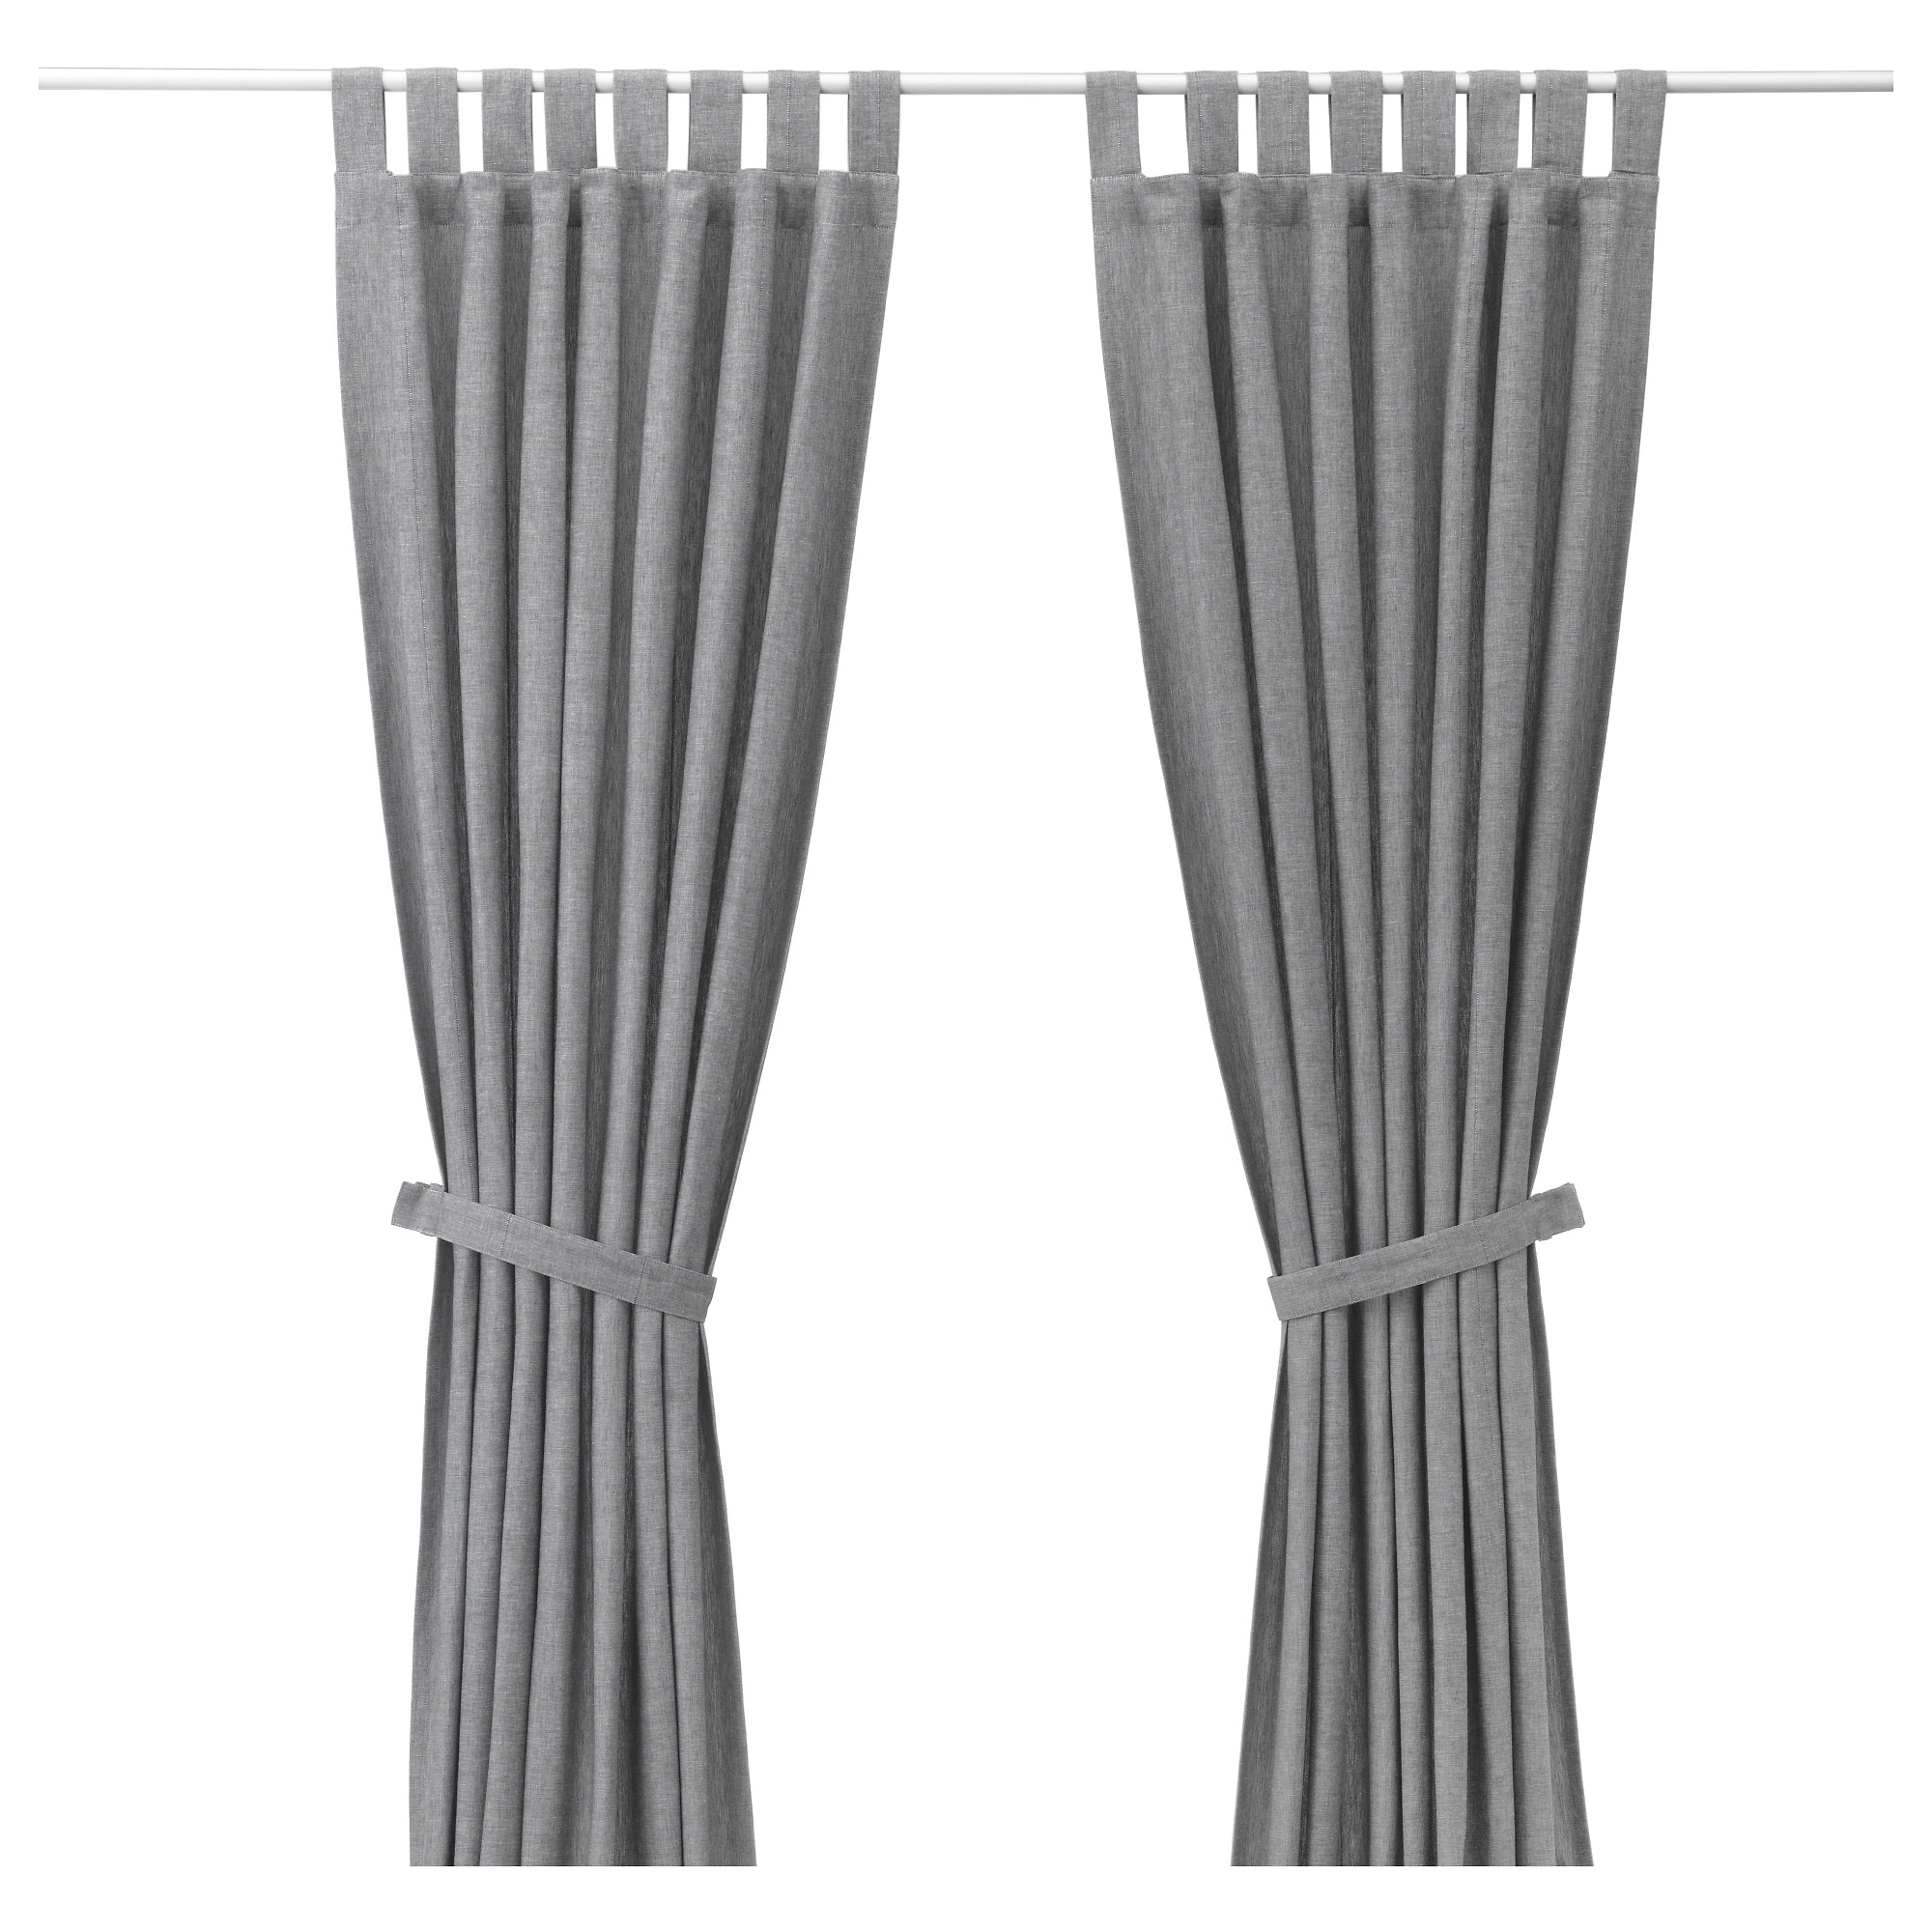 Black and white curtains bedroom - Lenda Curtains With Tie Backs 1 Pair Gray Length 98 Width